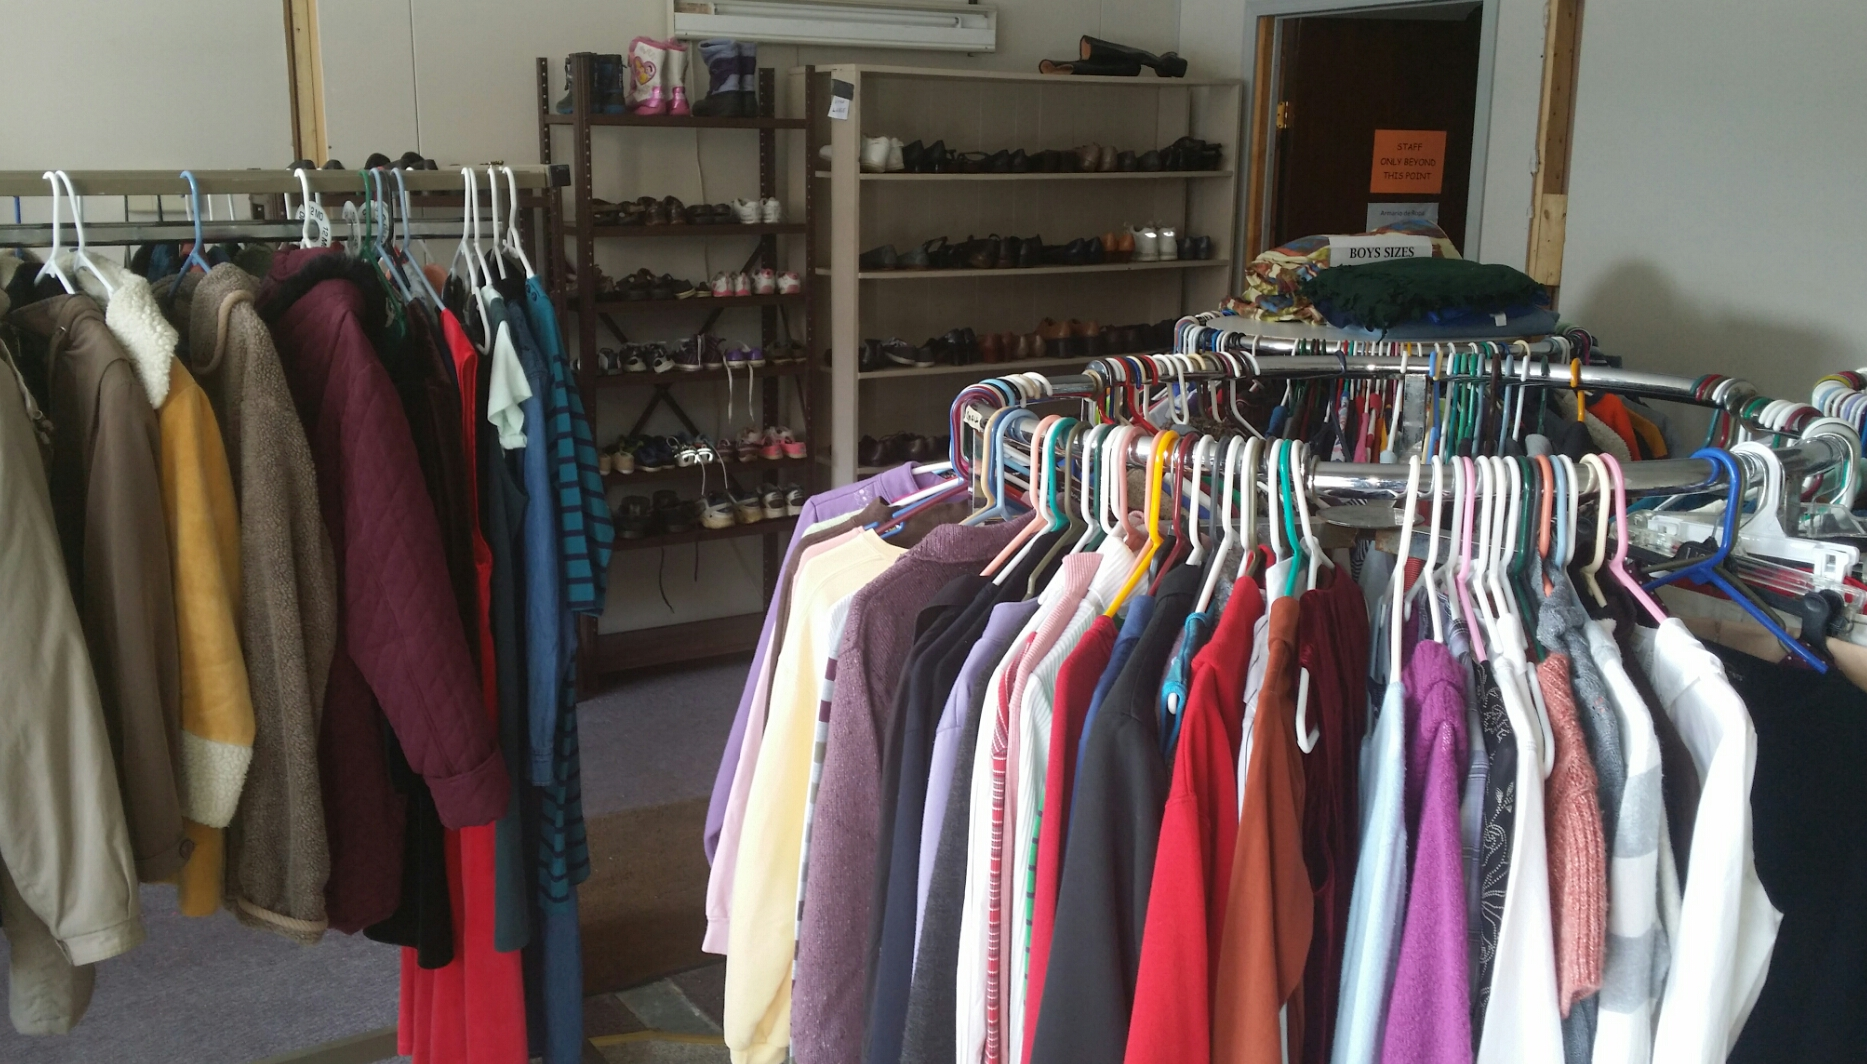 Clothes Closet stocked and ready for shoppers.